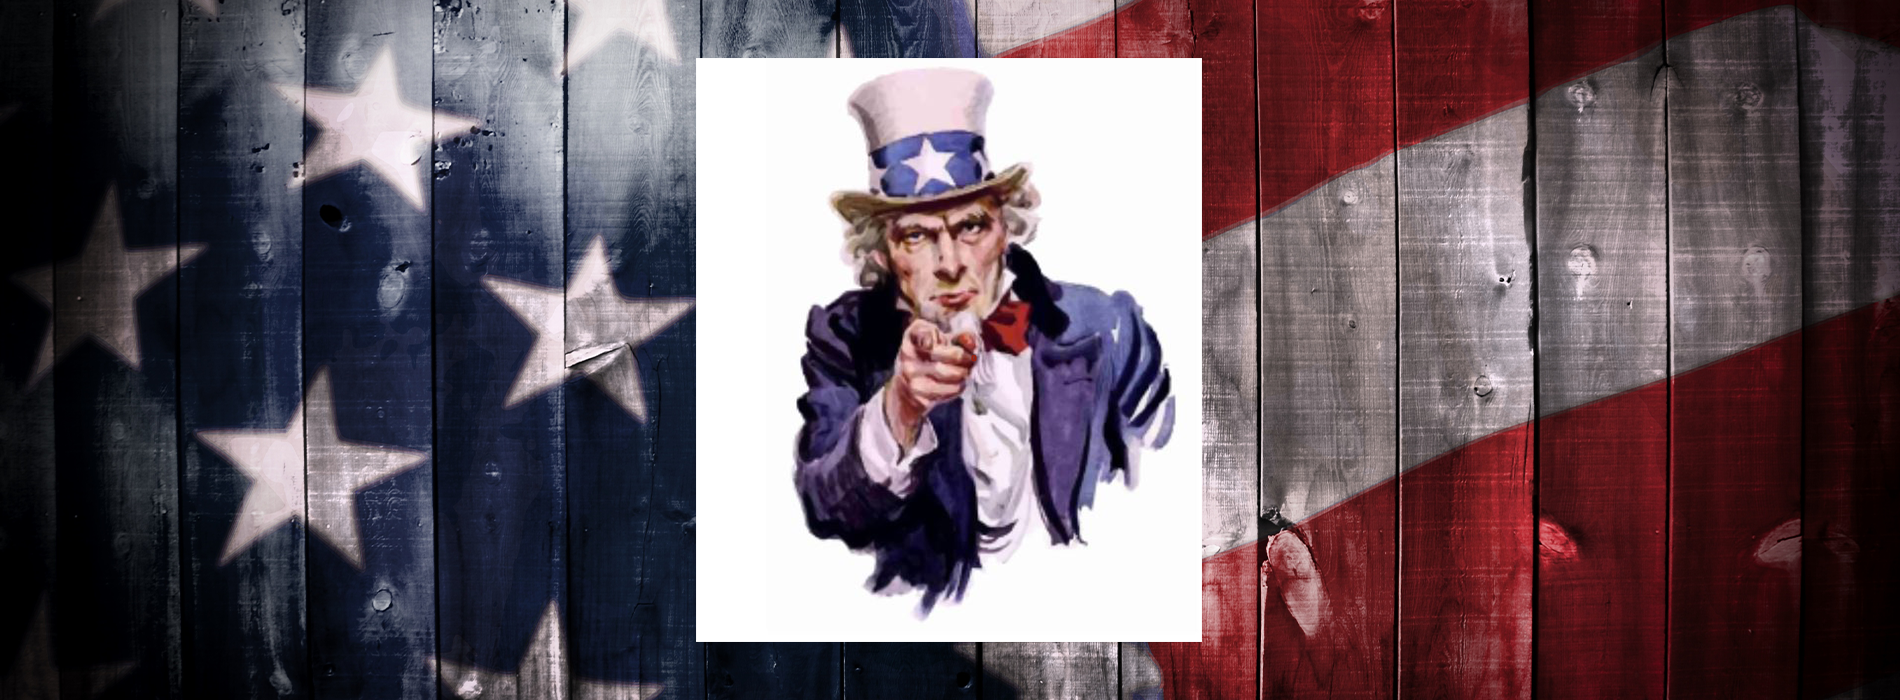 Uncle Sam pointing with US flag behind him.